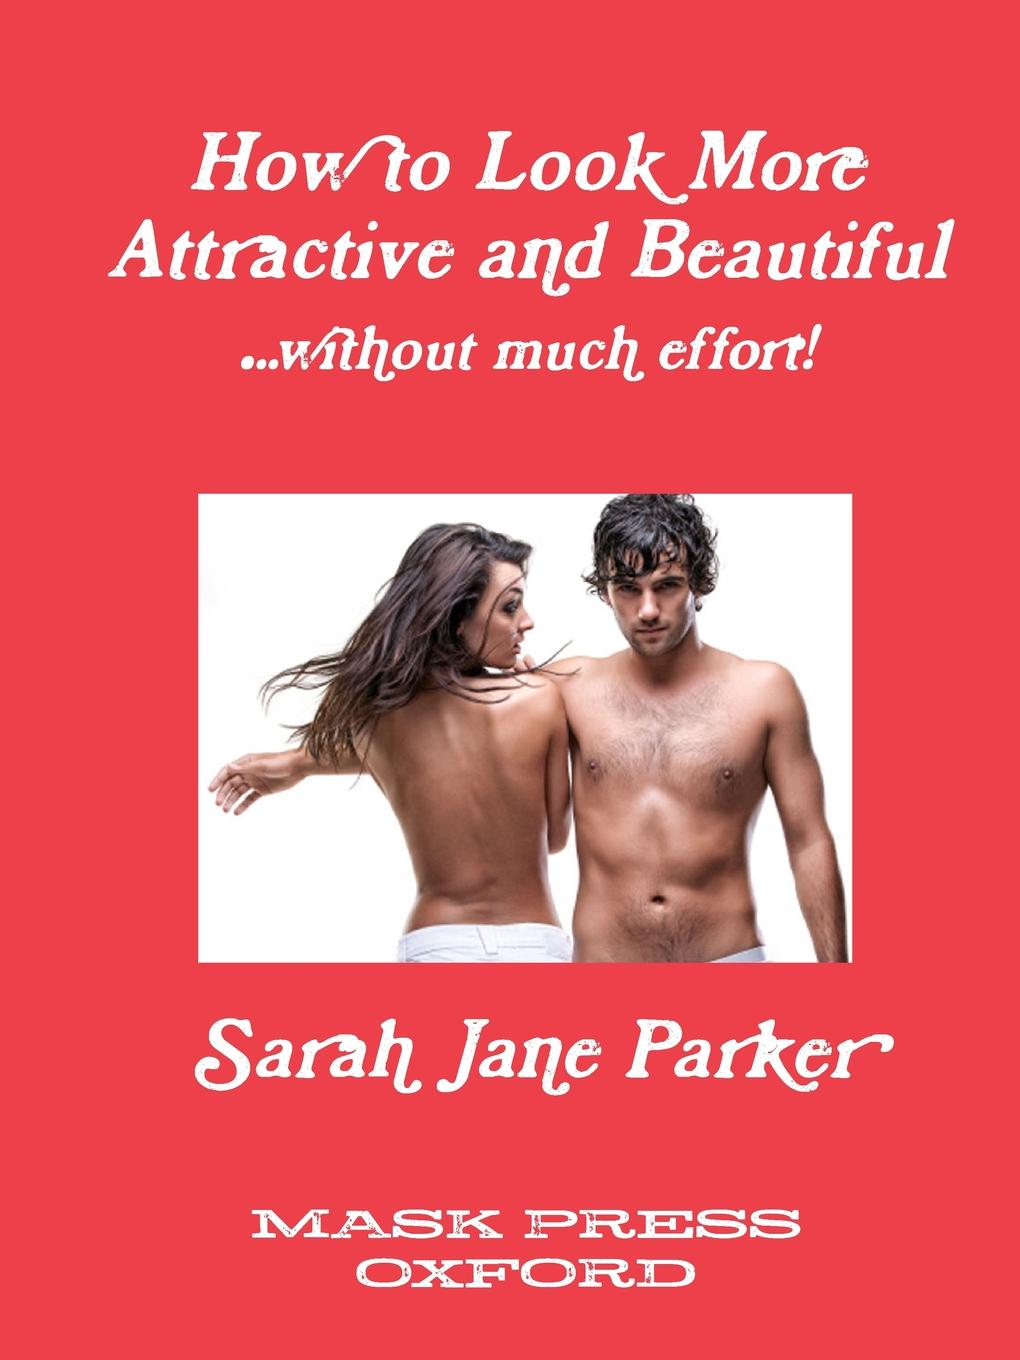 Sarah Jane Parker How to Look More Attractive and Beautiful liggy webb how to be happy how developing your confidence resilience appreciation and communication can lead to a happier healthier you